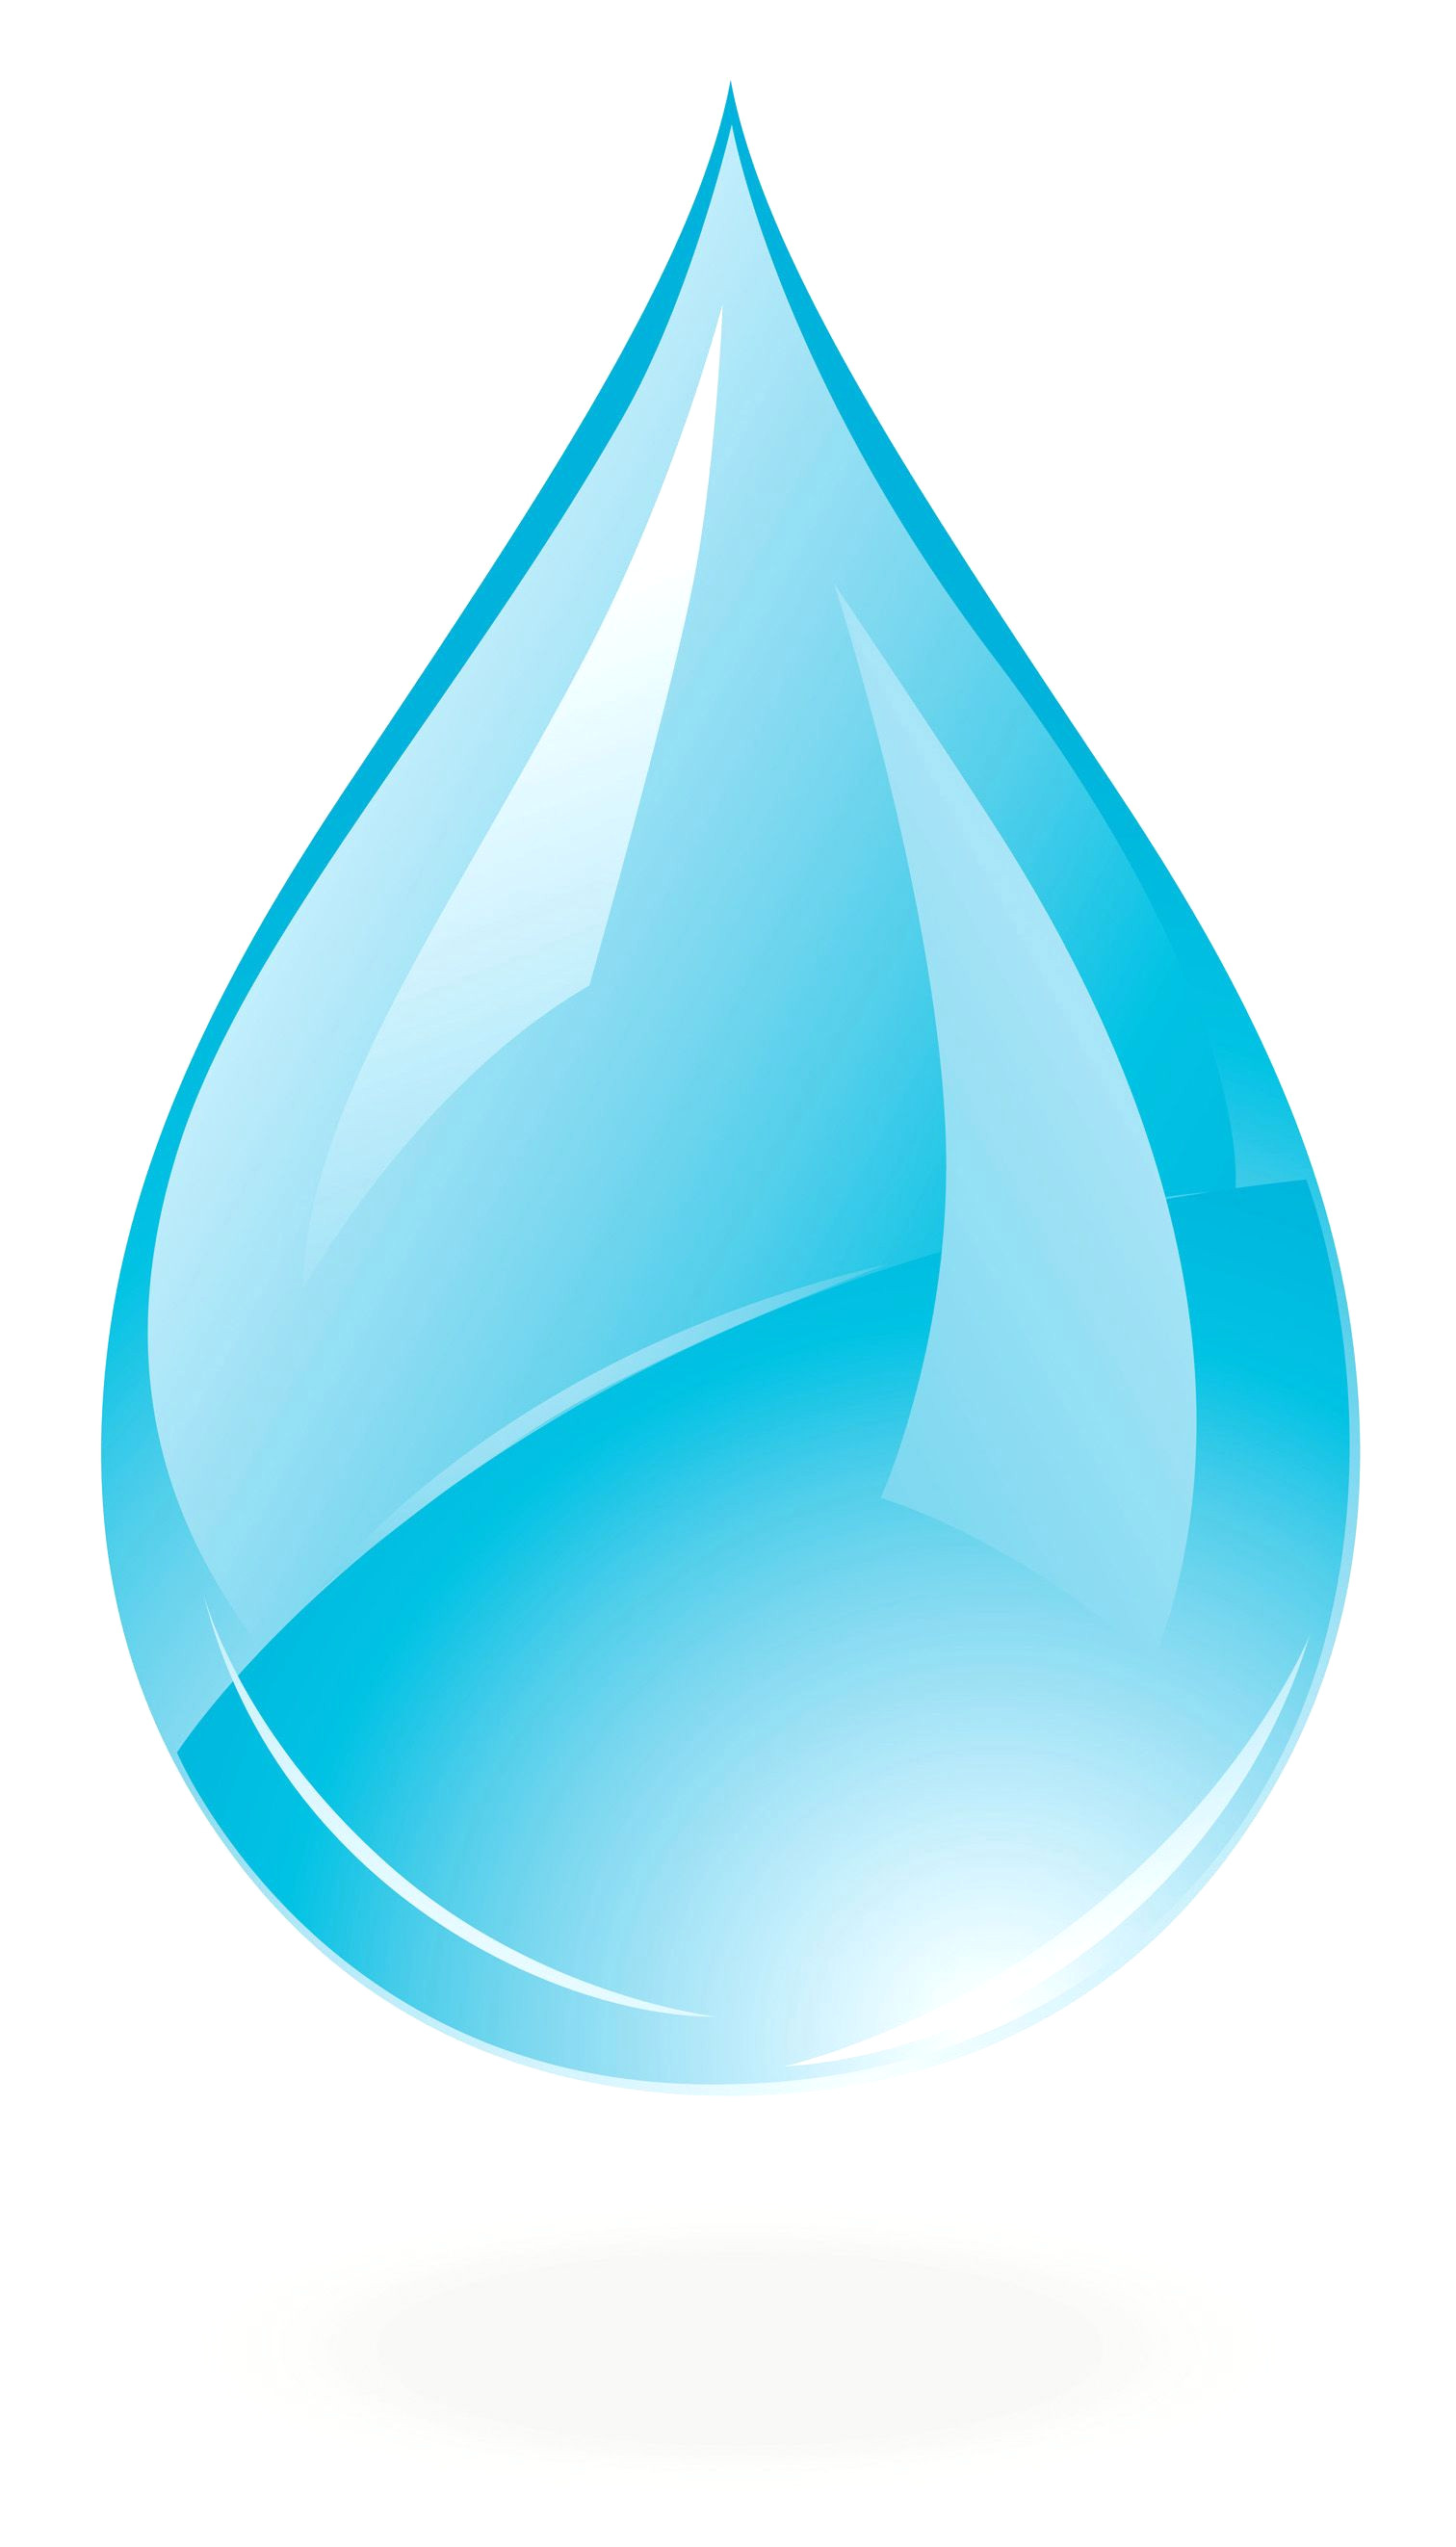 1512x2645 Water Drop Png Clip Art Image Gallery Yopriceville High Quality